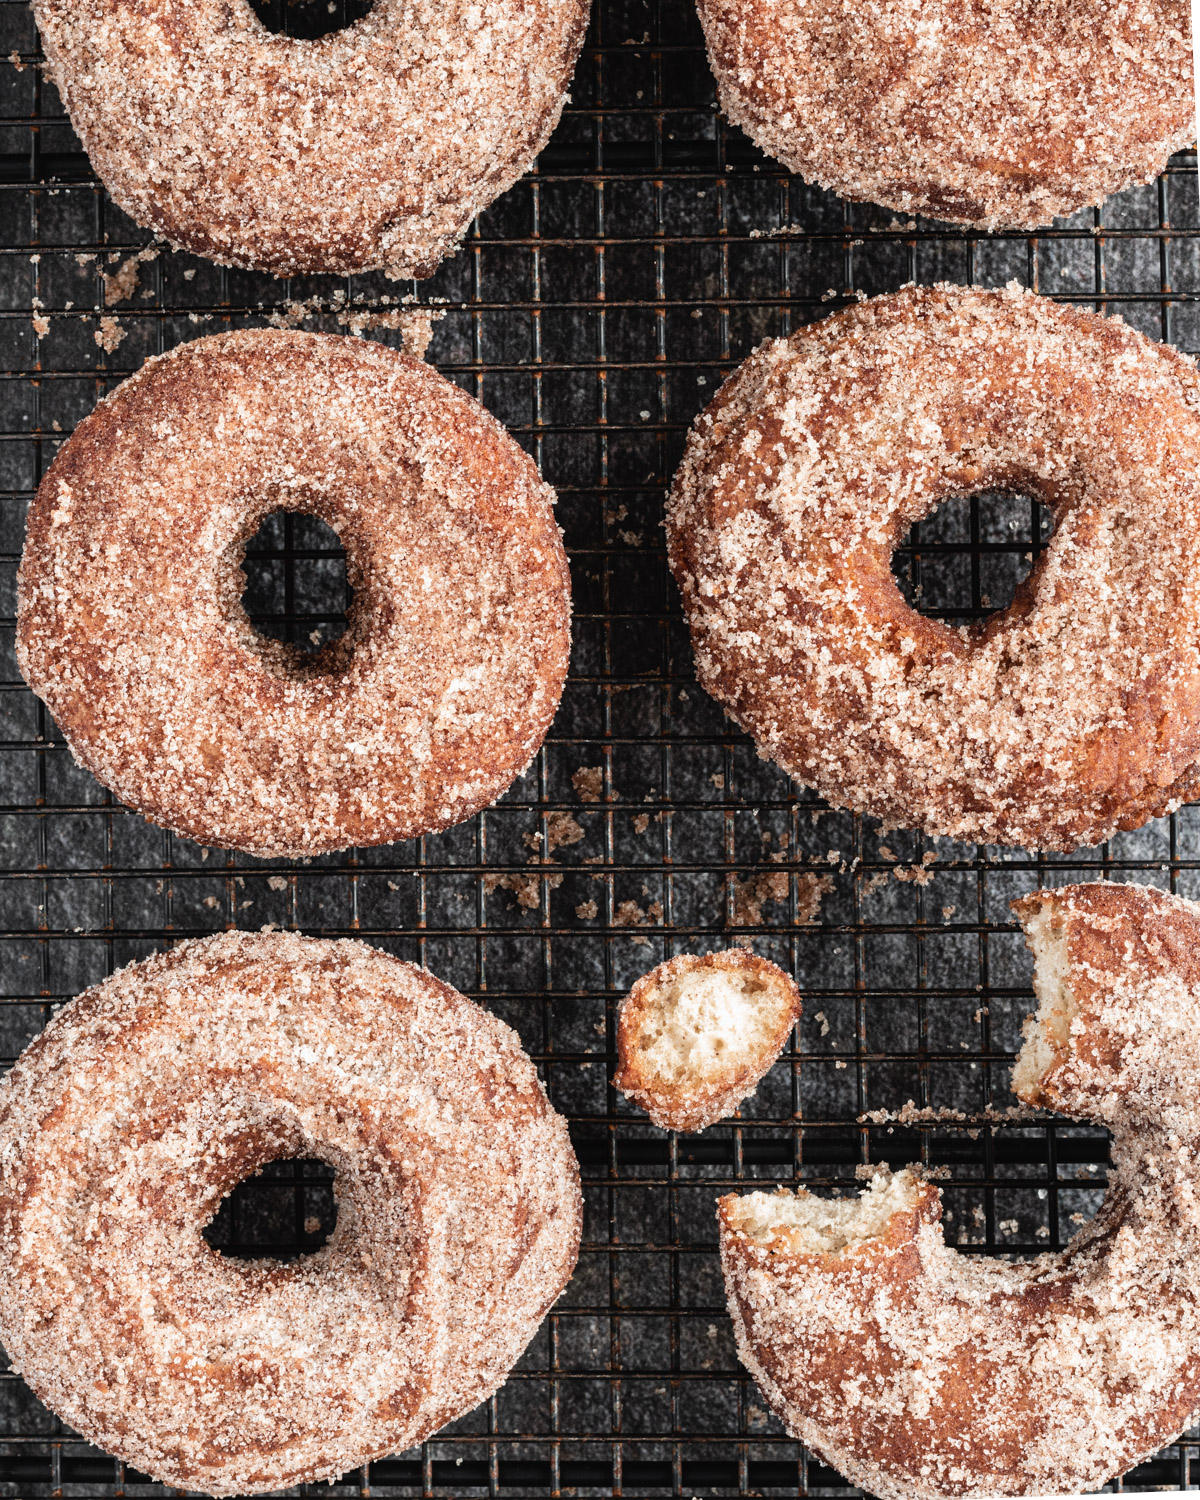 Apple cider donuts dusted in powdered sugar and laying on a cutting board. One donut has a bite out of it.